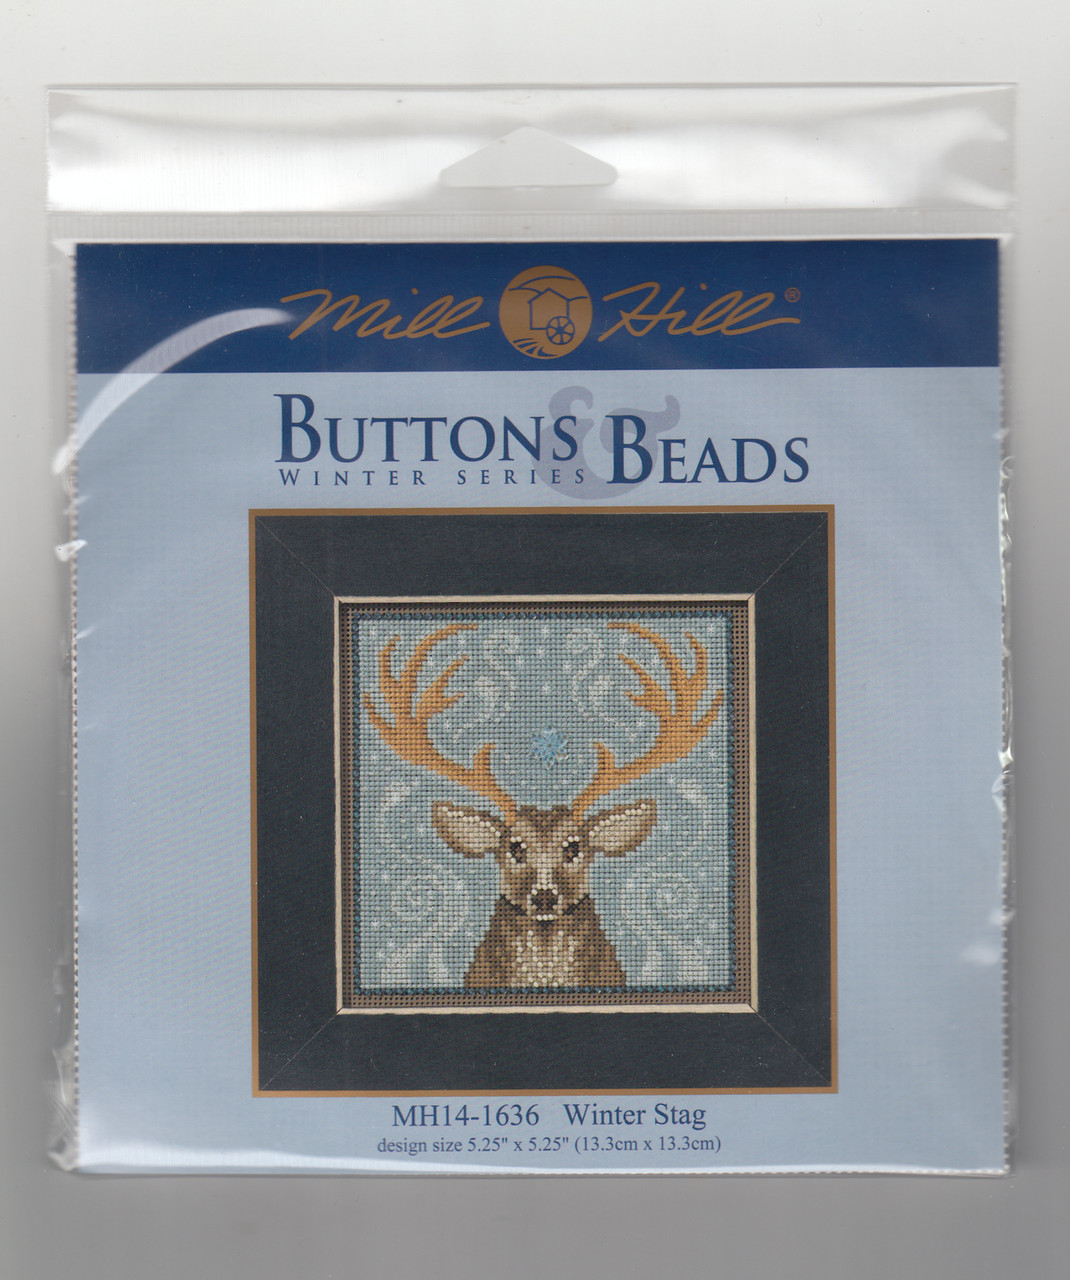 2016 Mill Hill Buttons & Beads Winter Series - Winter Stag